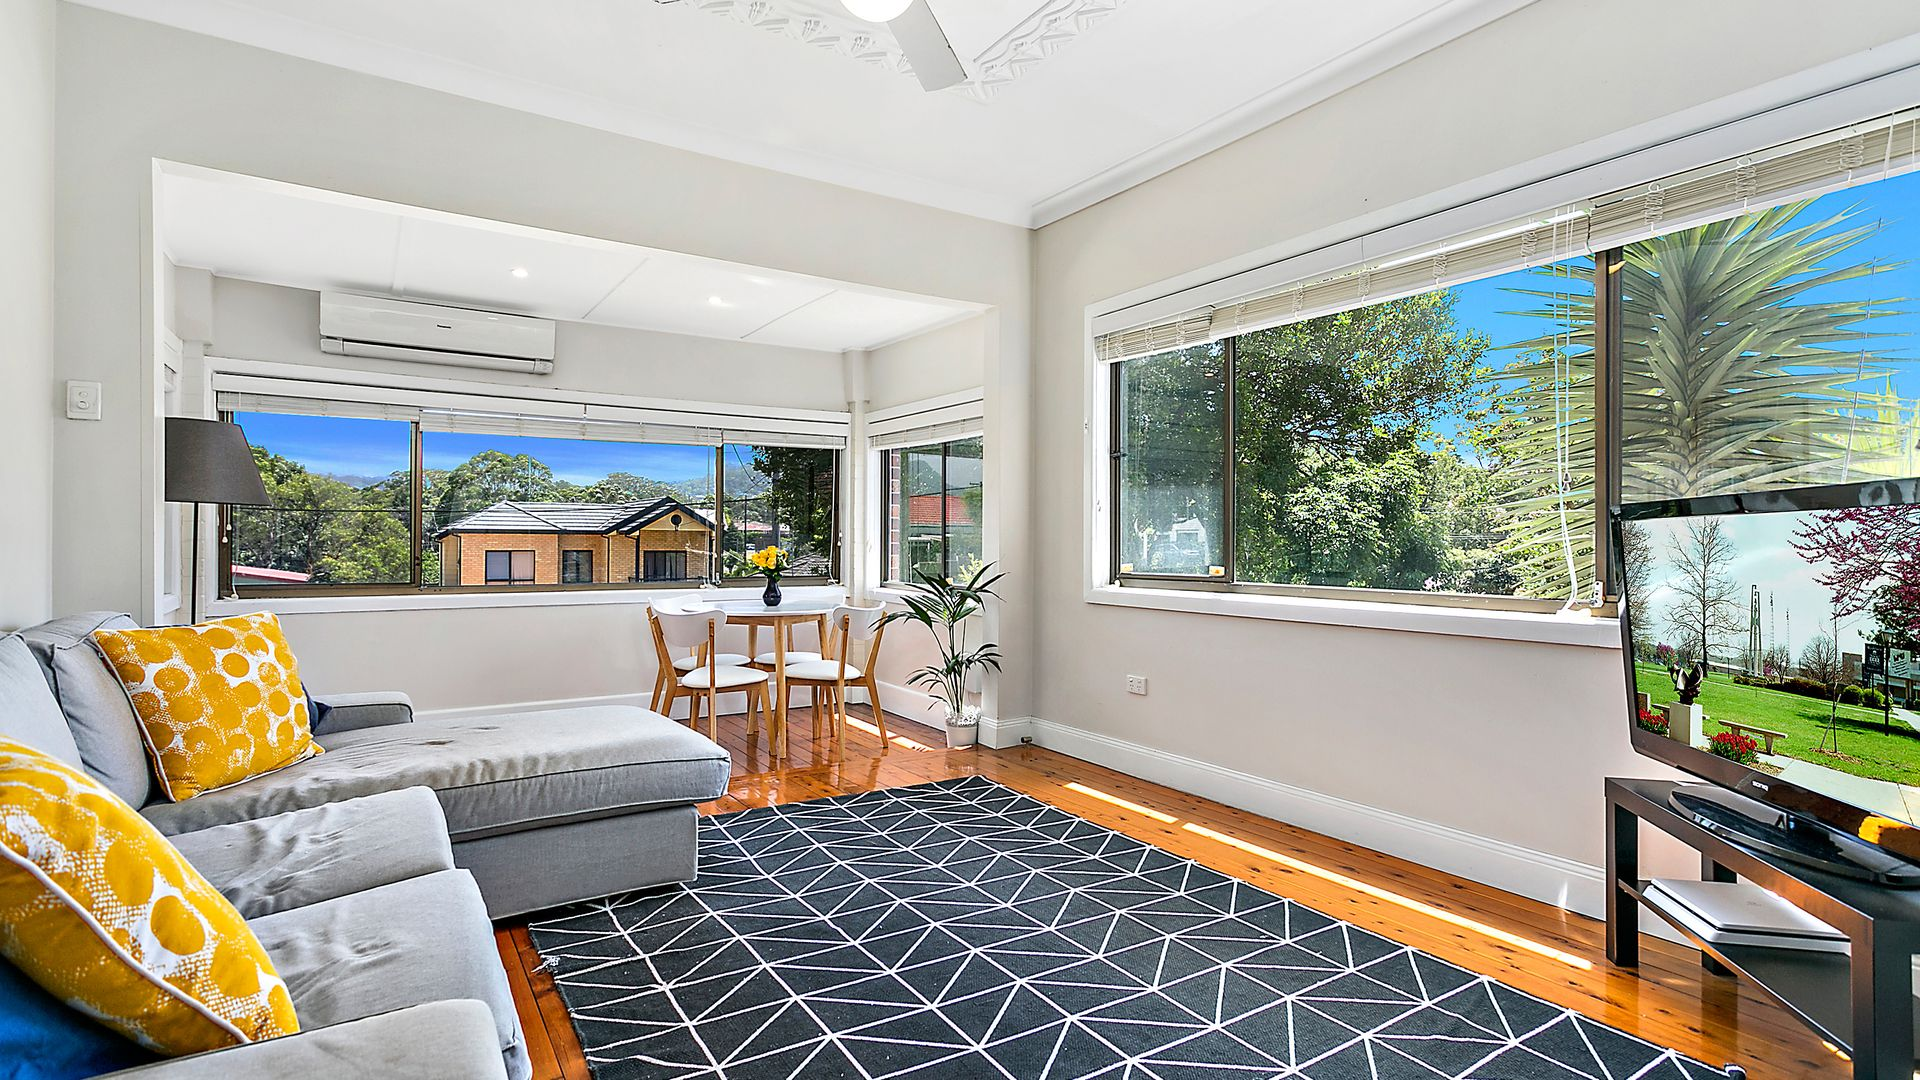 1/11 Dempster Street, West Wollongong NSW 2500, Image 1